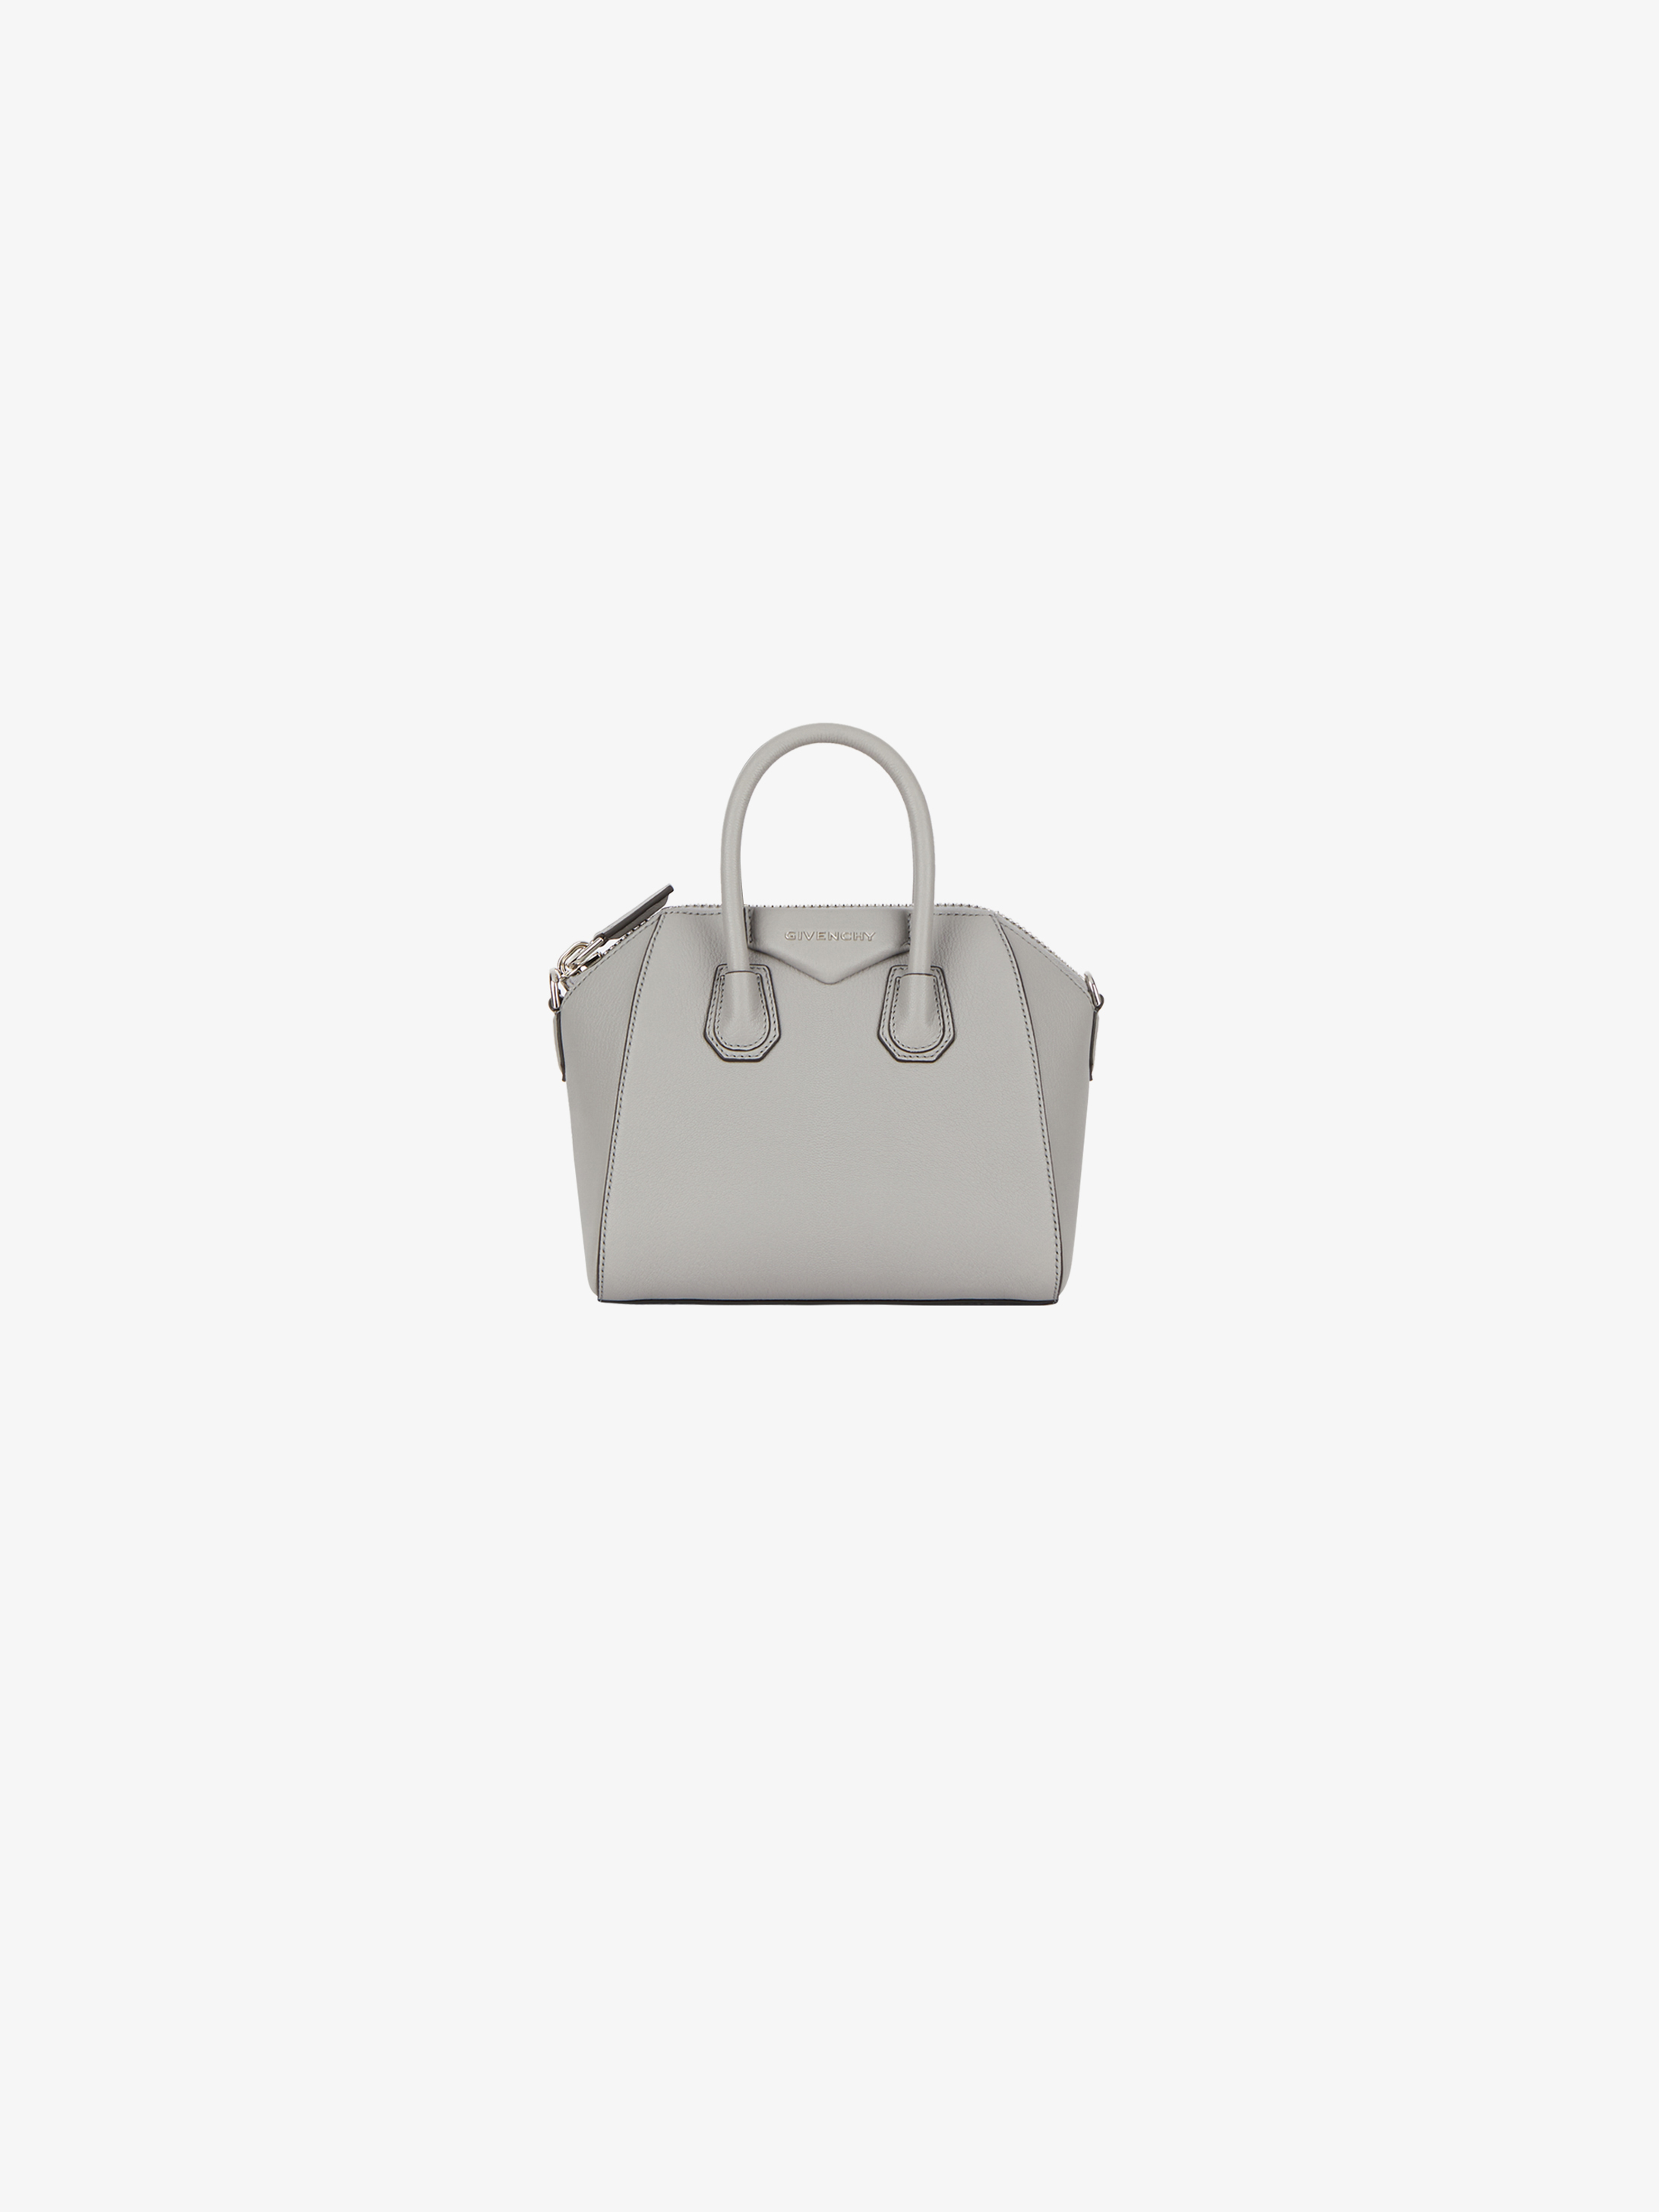 Mini Antigona bag in grained leather